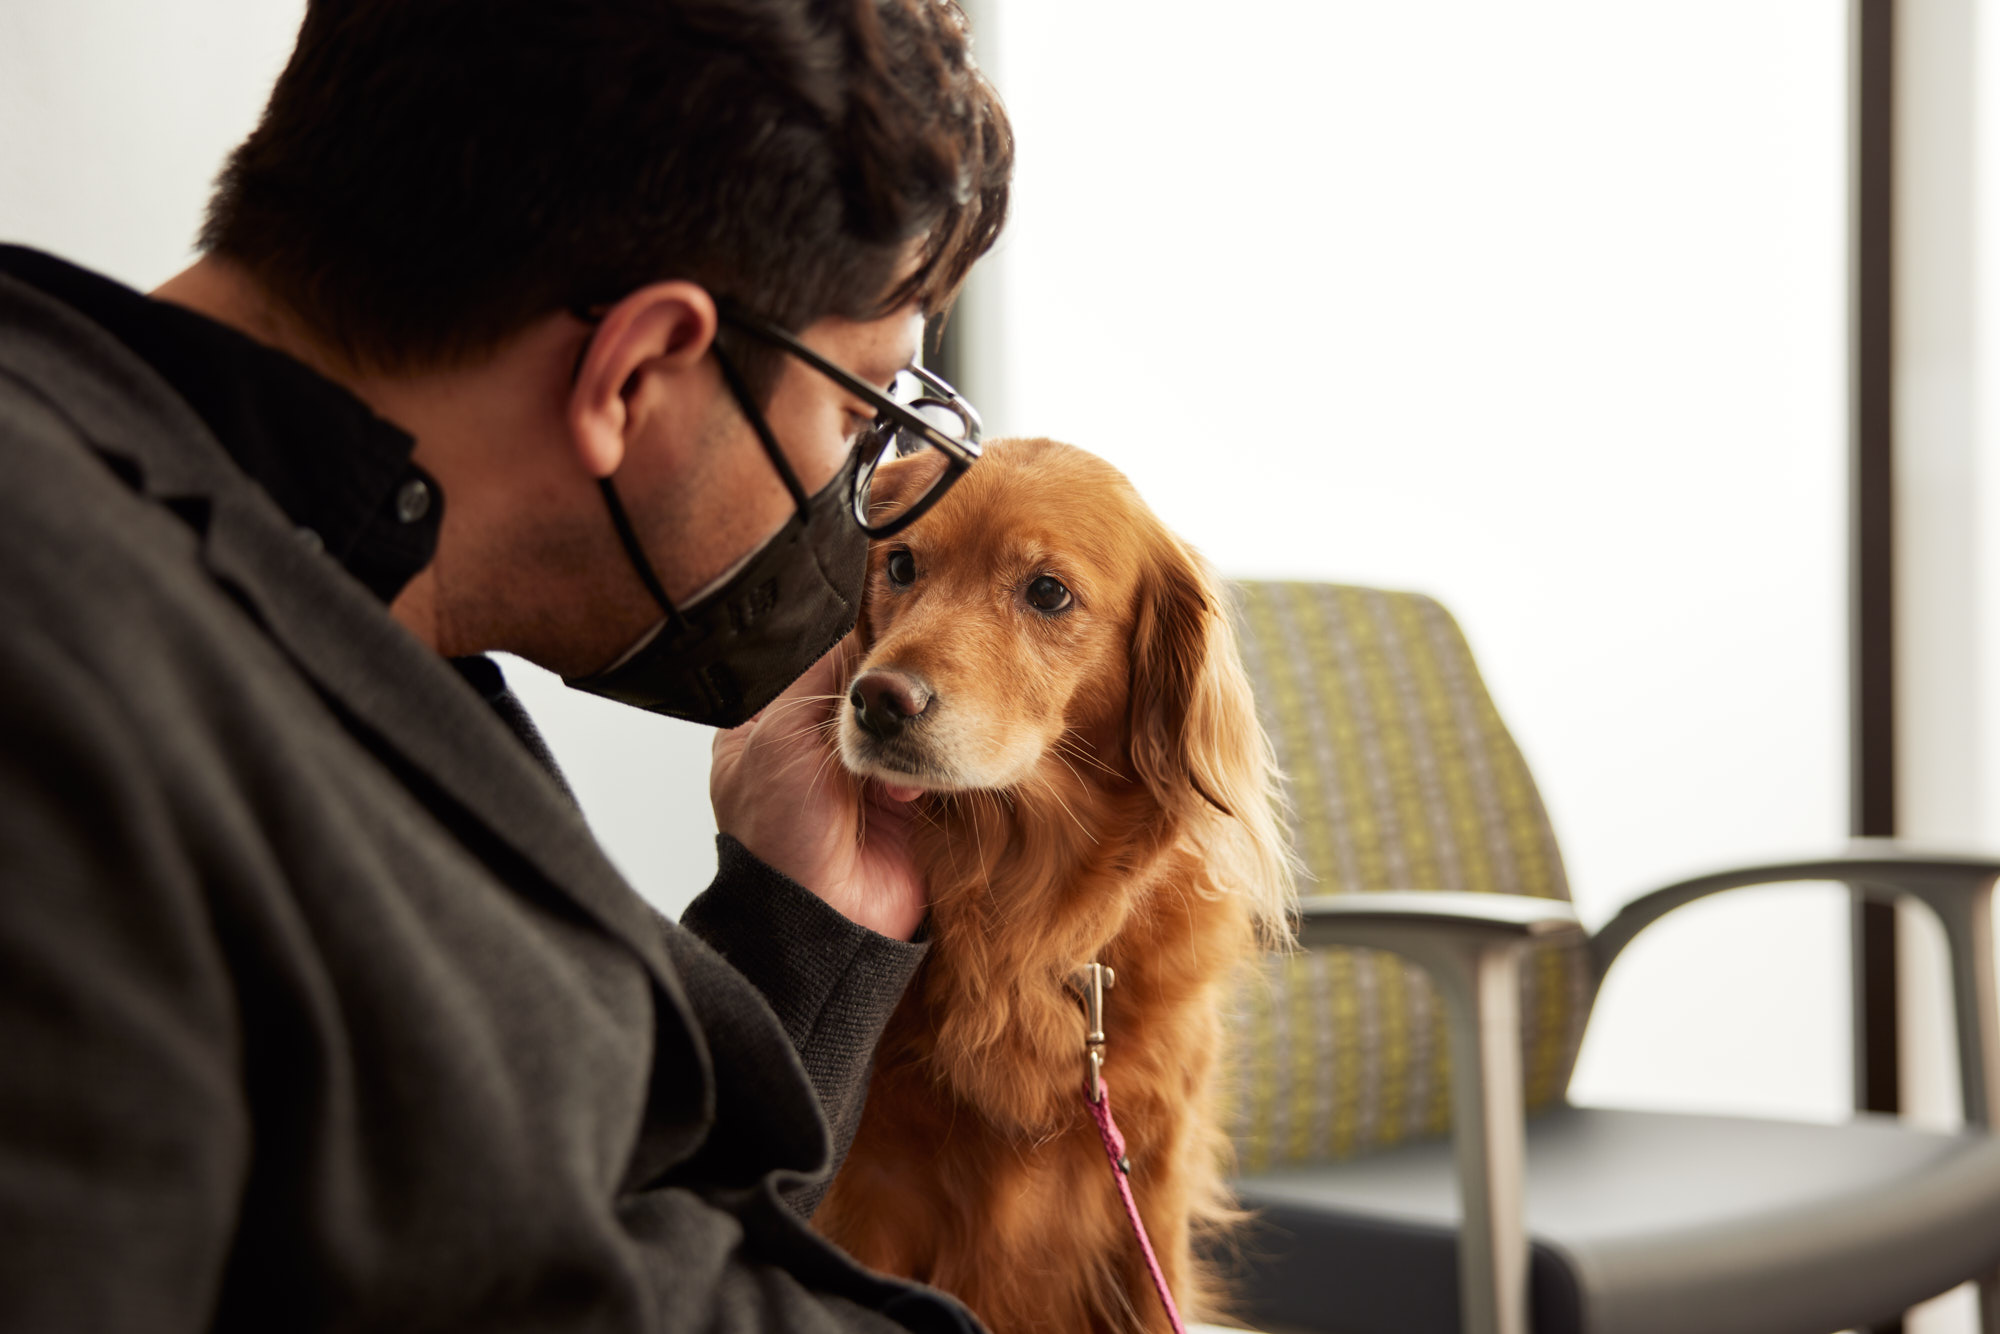 Owner and Golden | Healthcare Lifestyle Photography